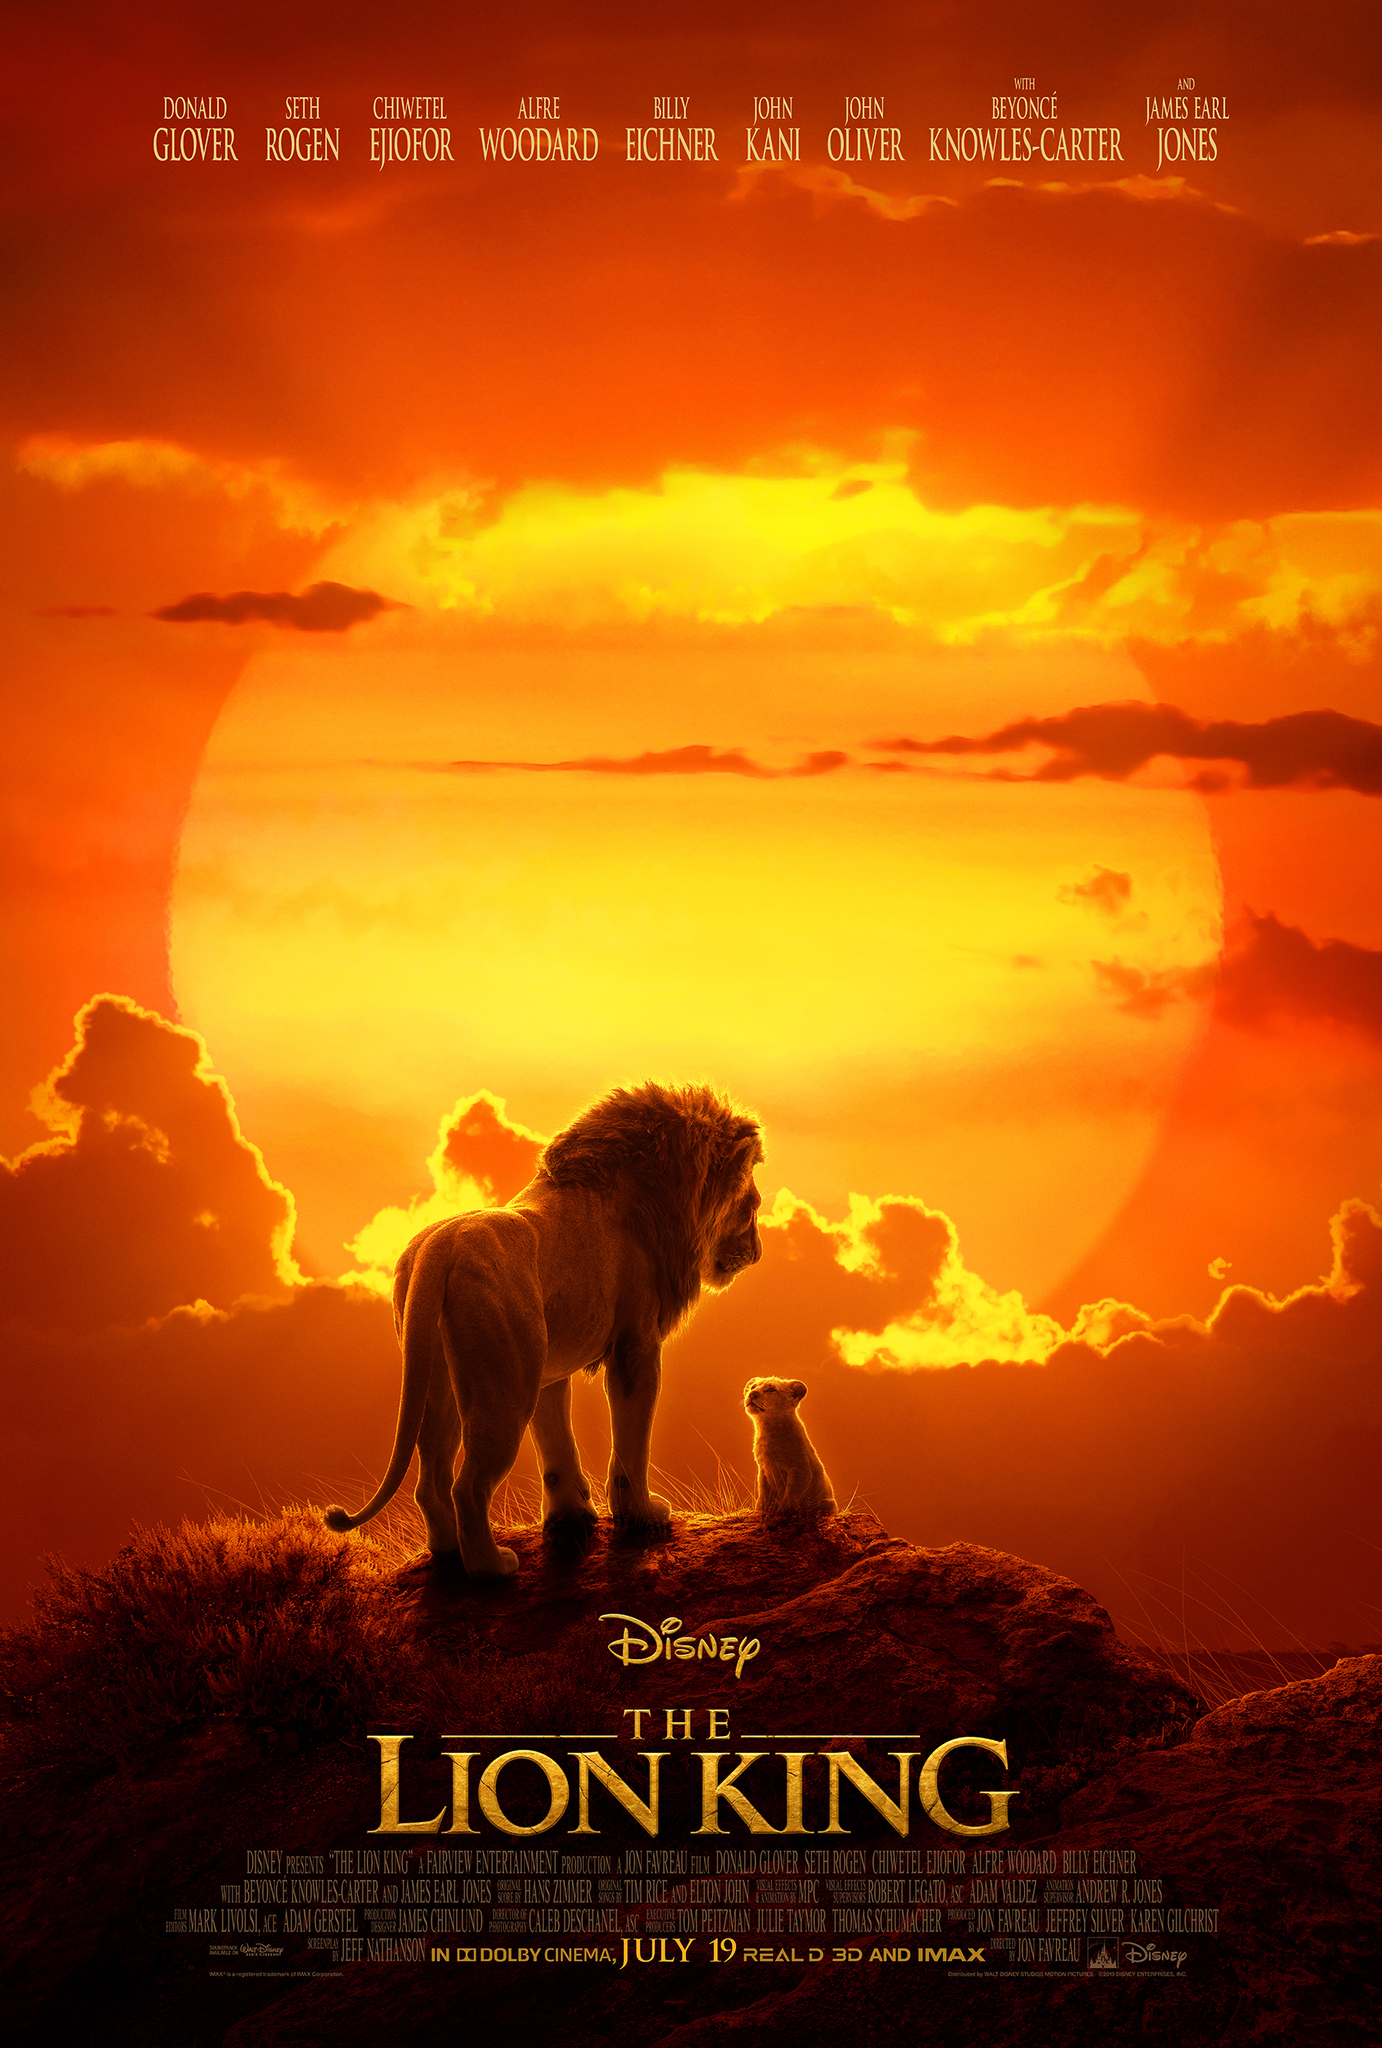 Othersode #30: Simba Did It Fully Nude / The Lion King 2019 - In the jungle, the mighty jungle, the #BookSquad meets todaaaaay! Get your singing voices ready for our discussion of the new Lion King remake. Special guest Said joins us to talk about the visual effects, standout (and not-so-standout) performances, our favorite songs, and storytelling in the Pridelands. Plus we get into some listener feedback on our Black Mirror #othersode and talk about what's on the #BookSquadBlog! Read along with us for the next #bookpisode on Madeline Miller's Circe (August 12). You've still got three days for your contribution to the Adam Cramond Martin Travel Award to be matched in honor of his birthday this month. Head to the link in our notes!